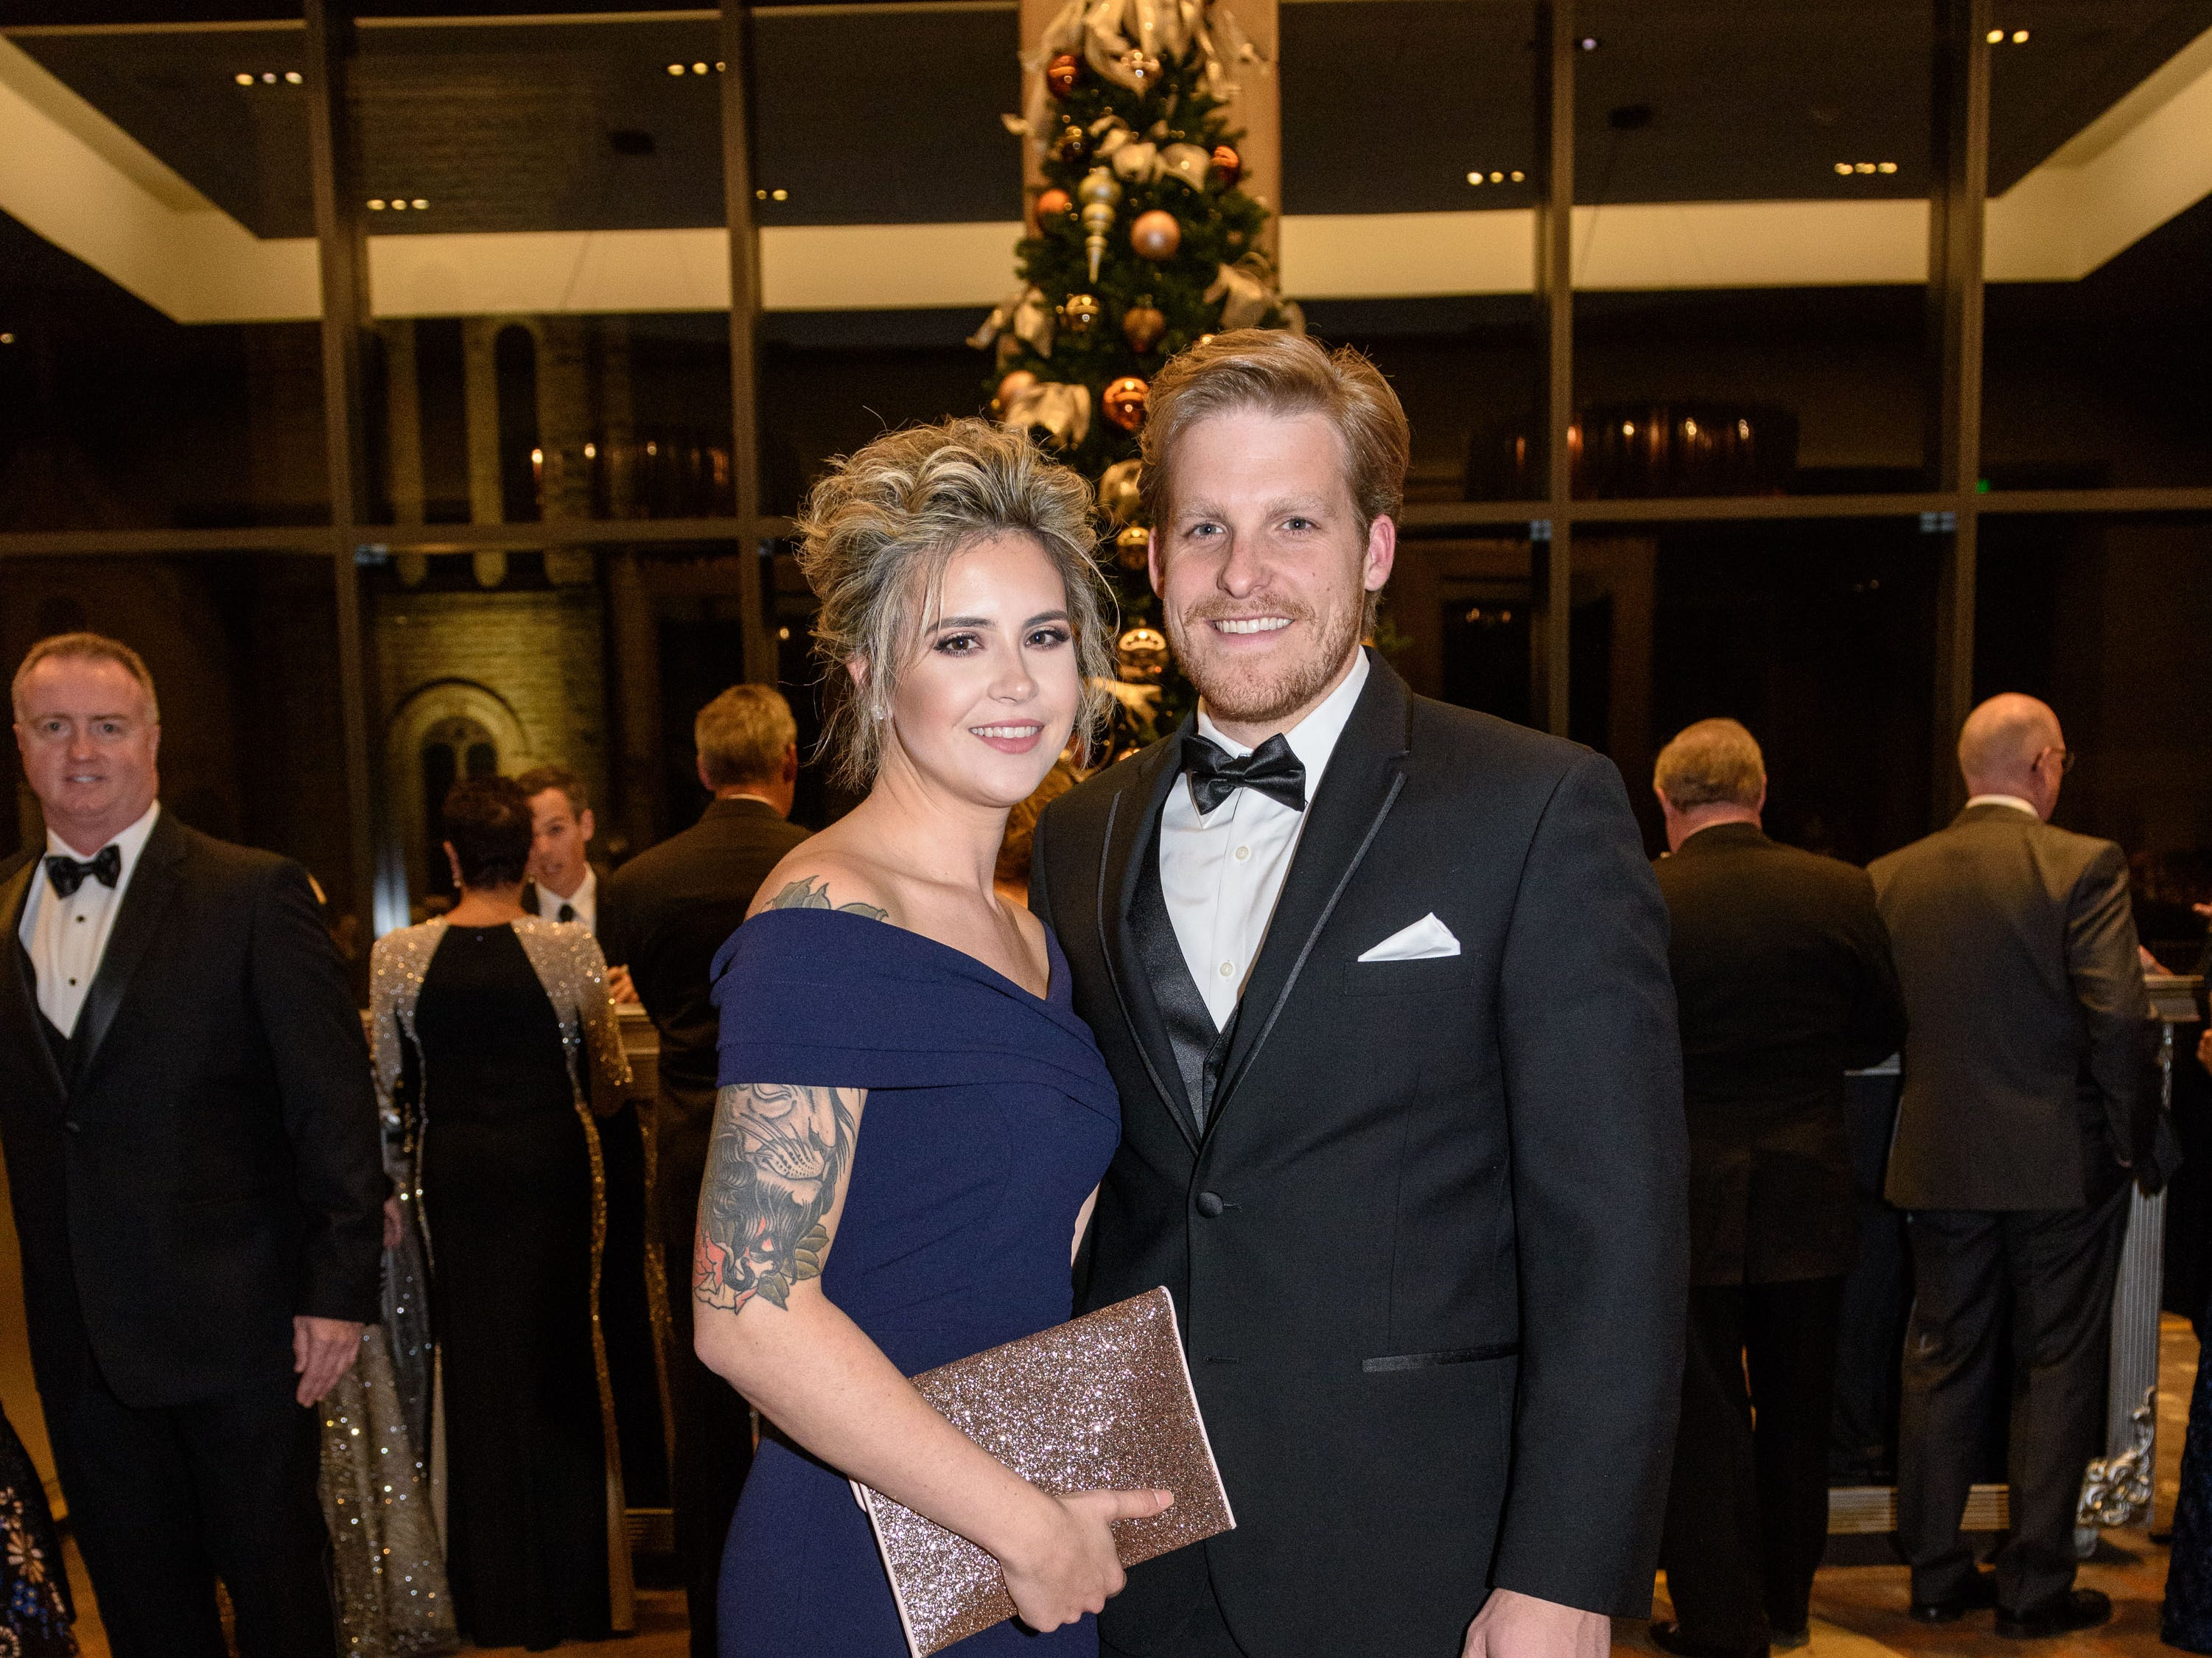 Devon and Tyler Yeoman at the Snow Ball Gala at the Omni Hotel, a benefit for the Jennifer Lawrence Cardiac Intensive Care Unit (CICU) at Norton ChildrenÕs Hospital. Nov. 17, 2018